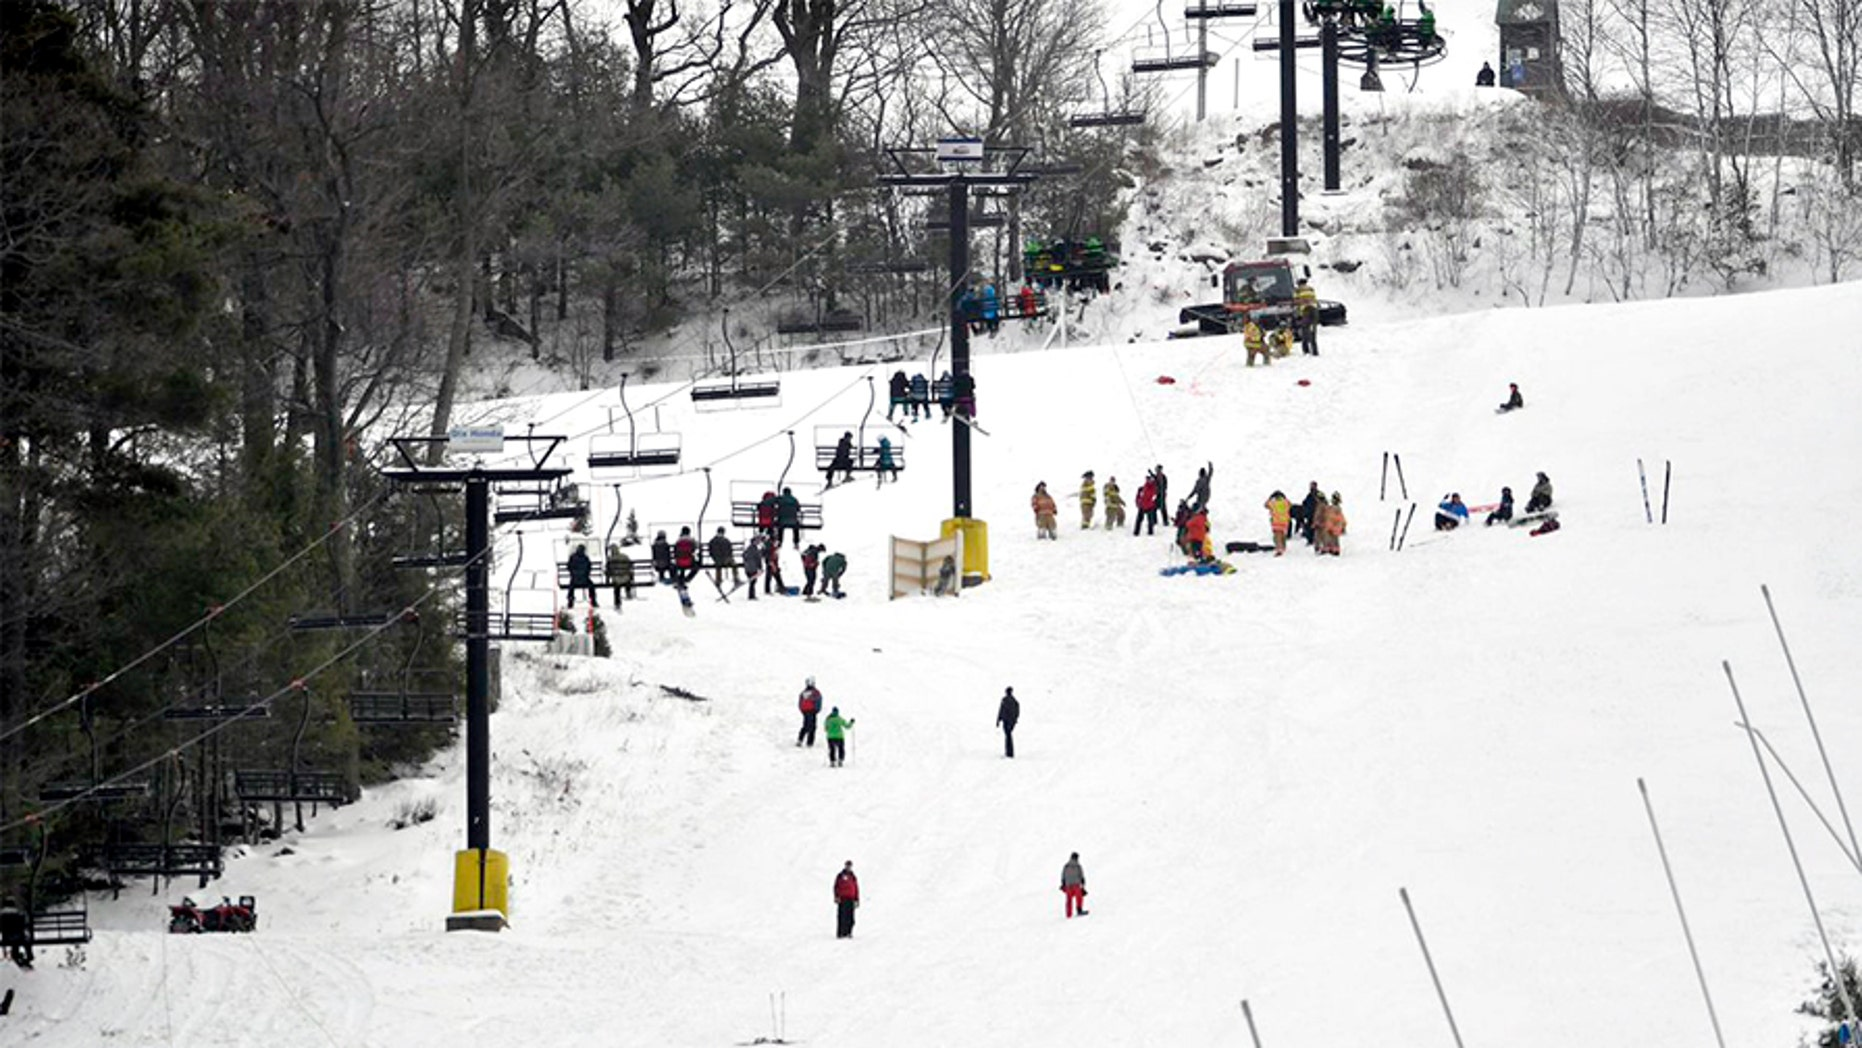 The chairlift at Tussey Mountain in Harris Township, Pennsylvania, became stuck Saturday morning after a malfunction.